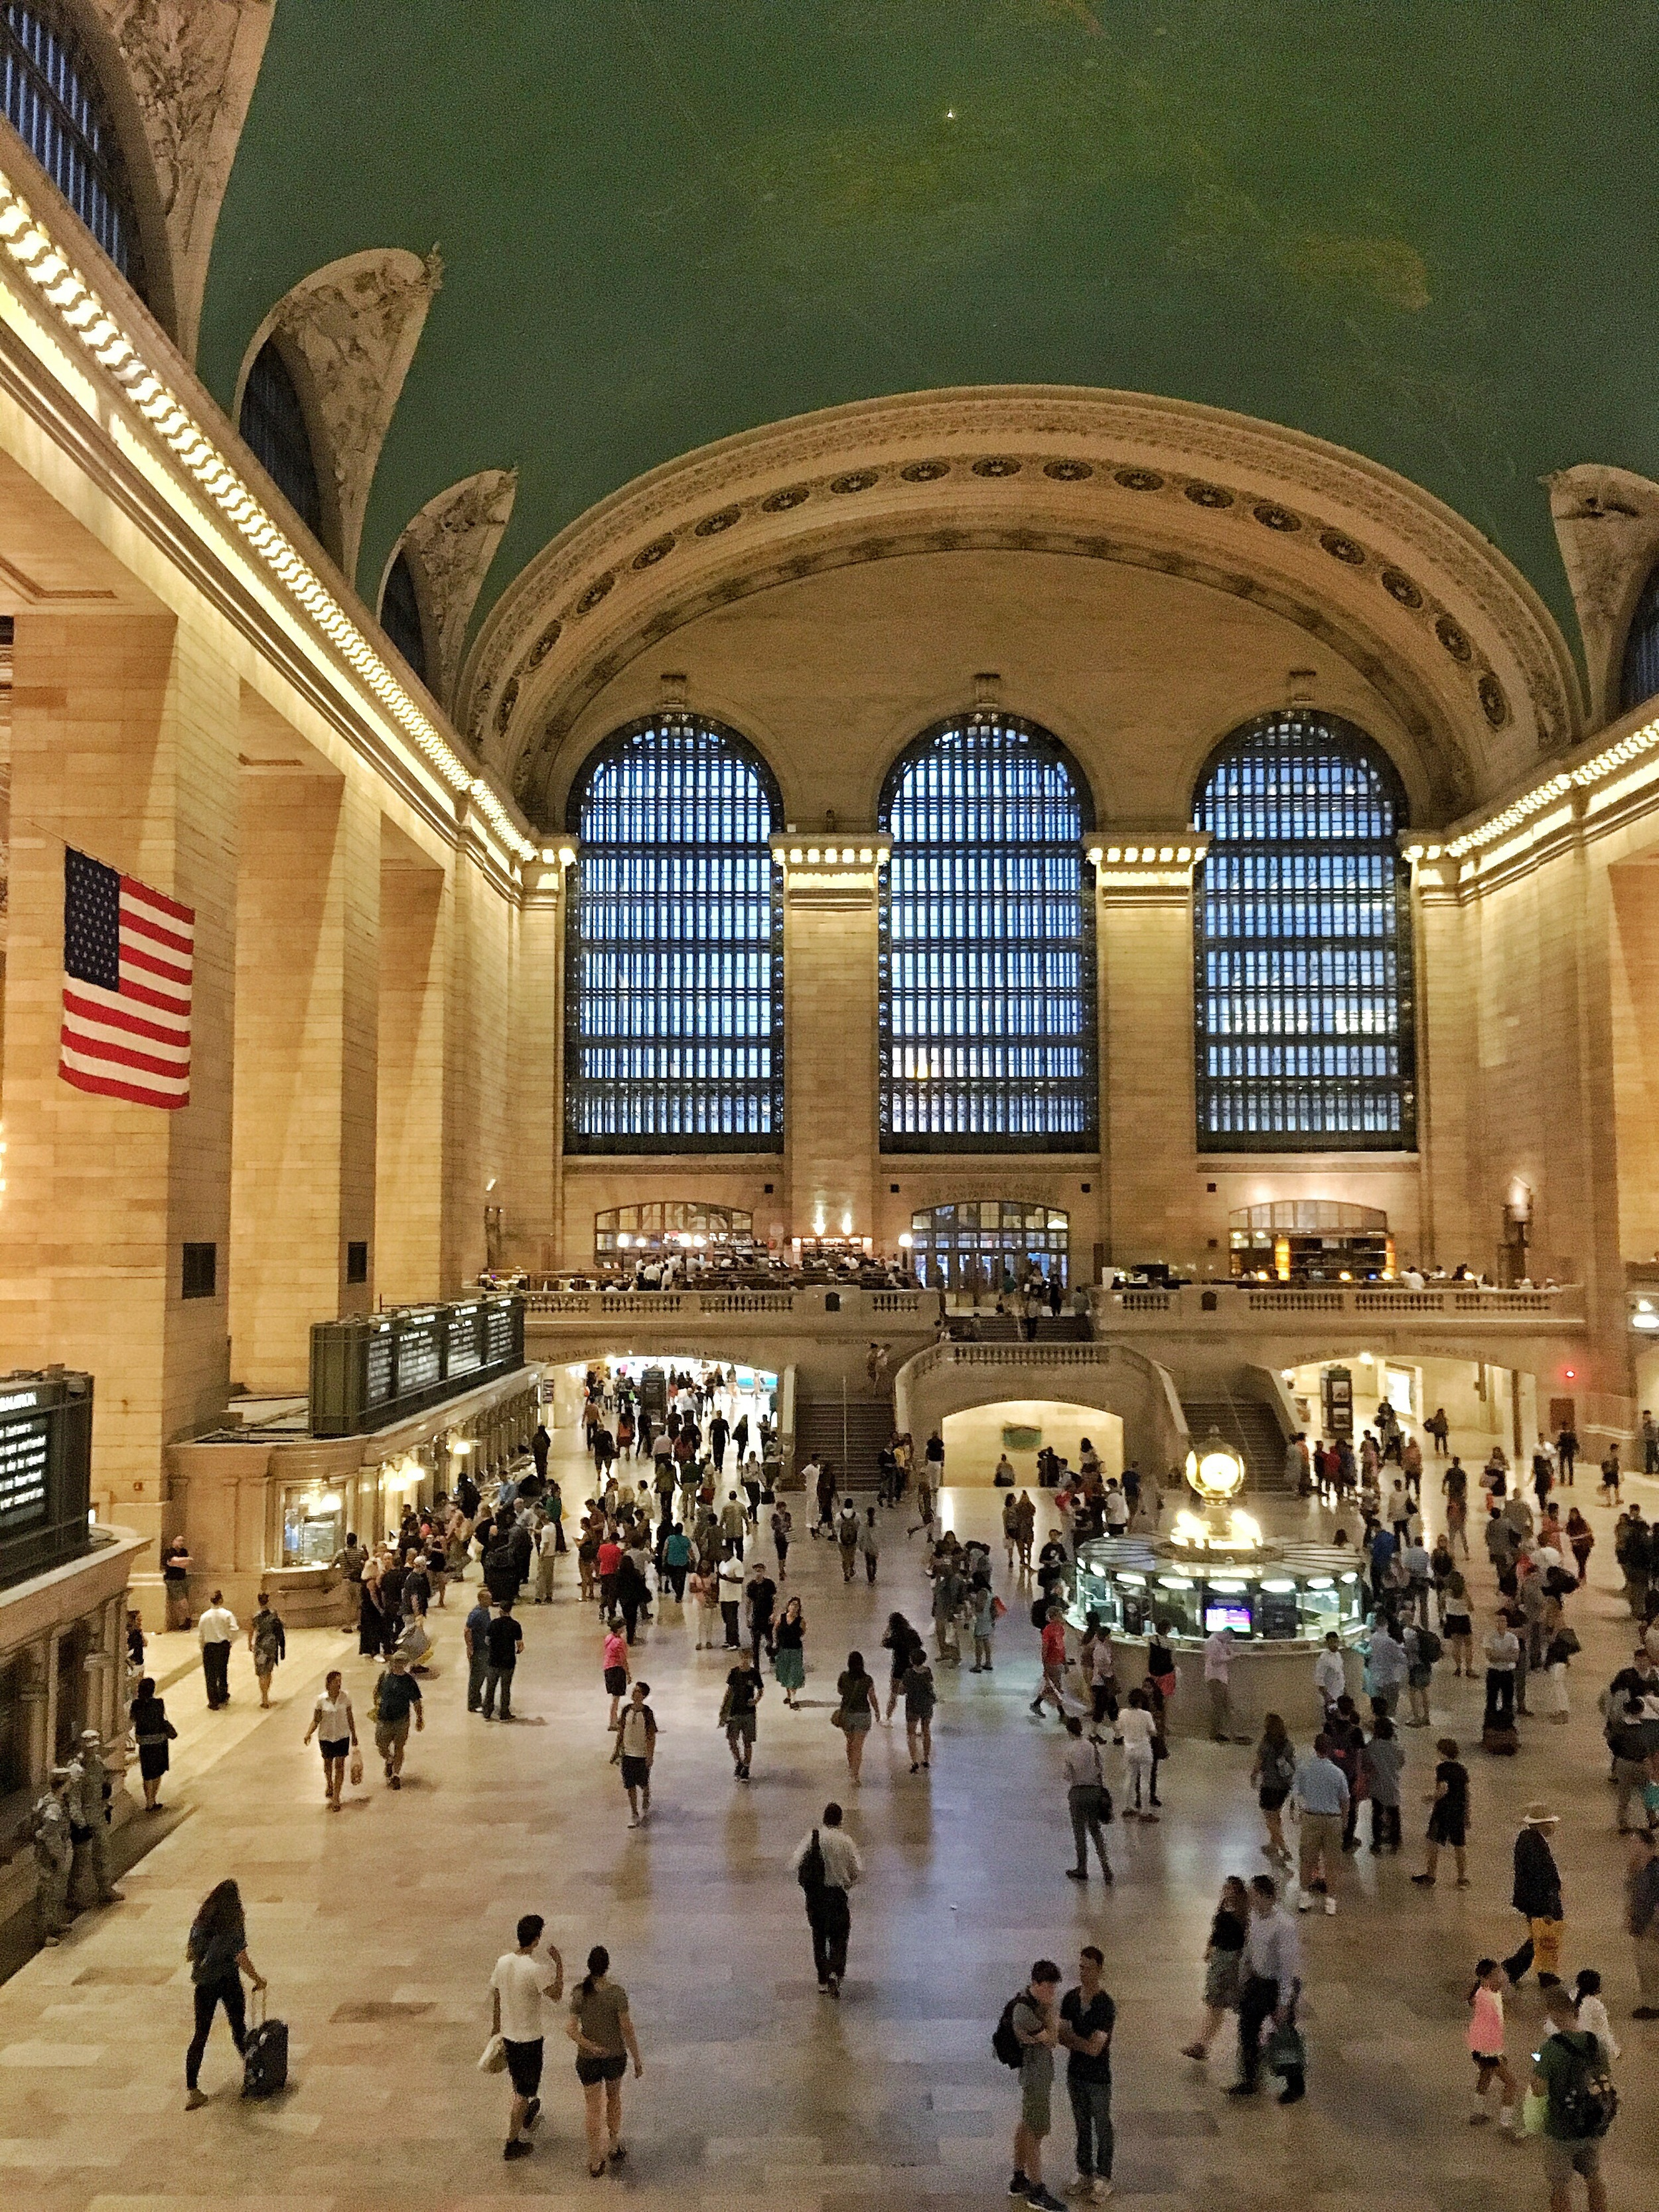 Harris had never seen Grand Central Station, so later that day we went.We figured it was something our hungover bodies could handle.